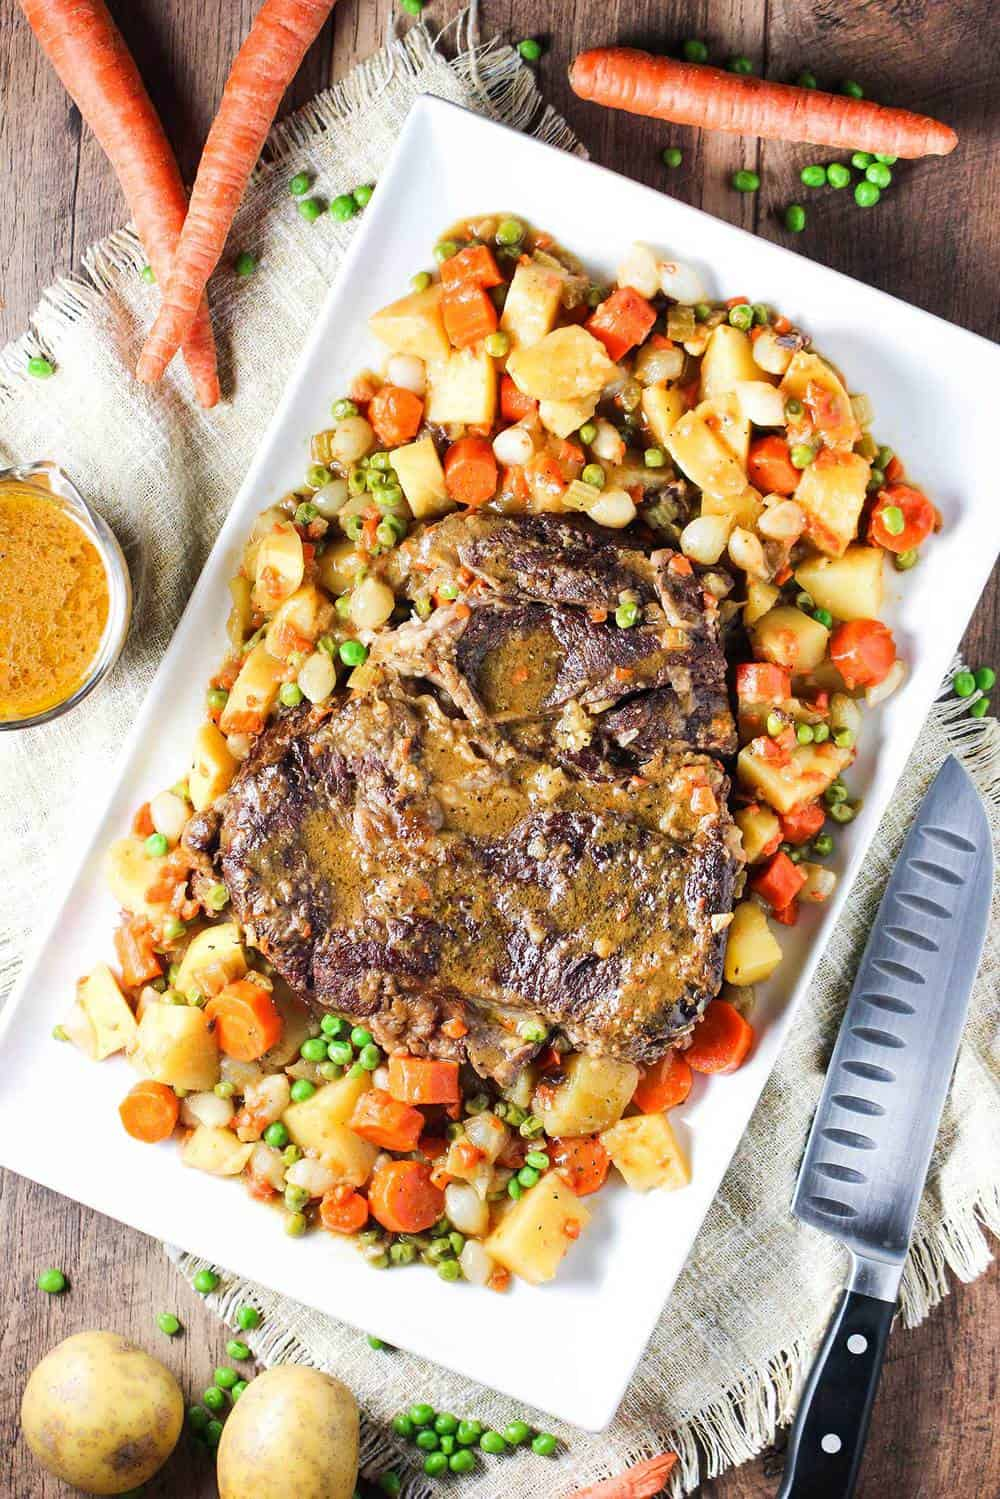 A large rectangular platter holding an American pot roast and vegetables